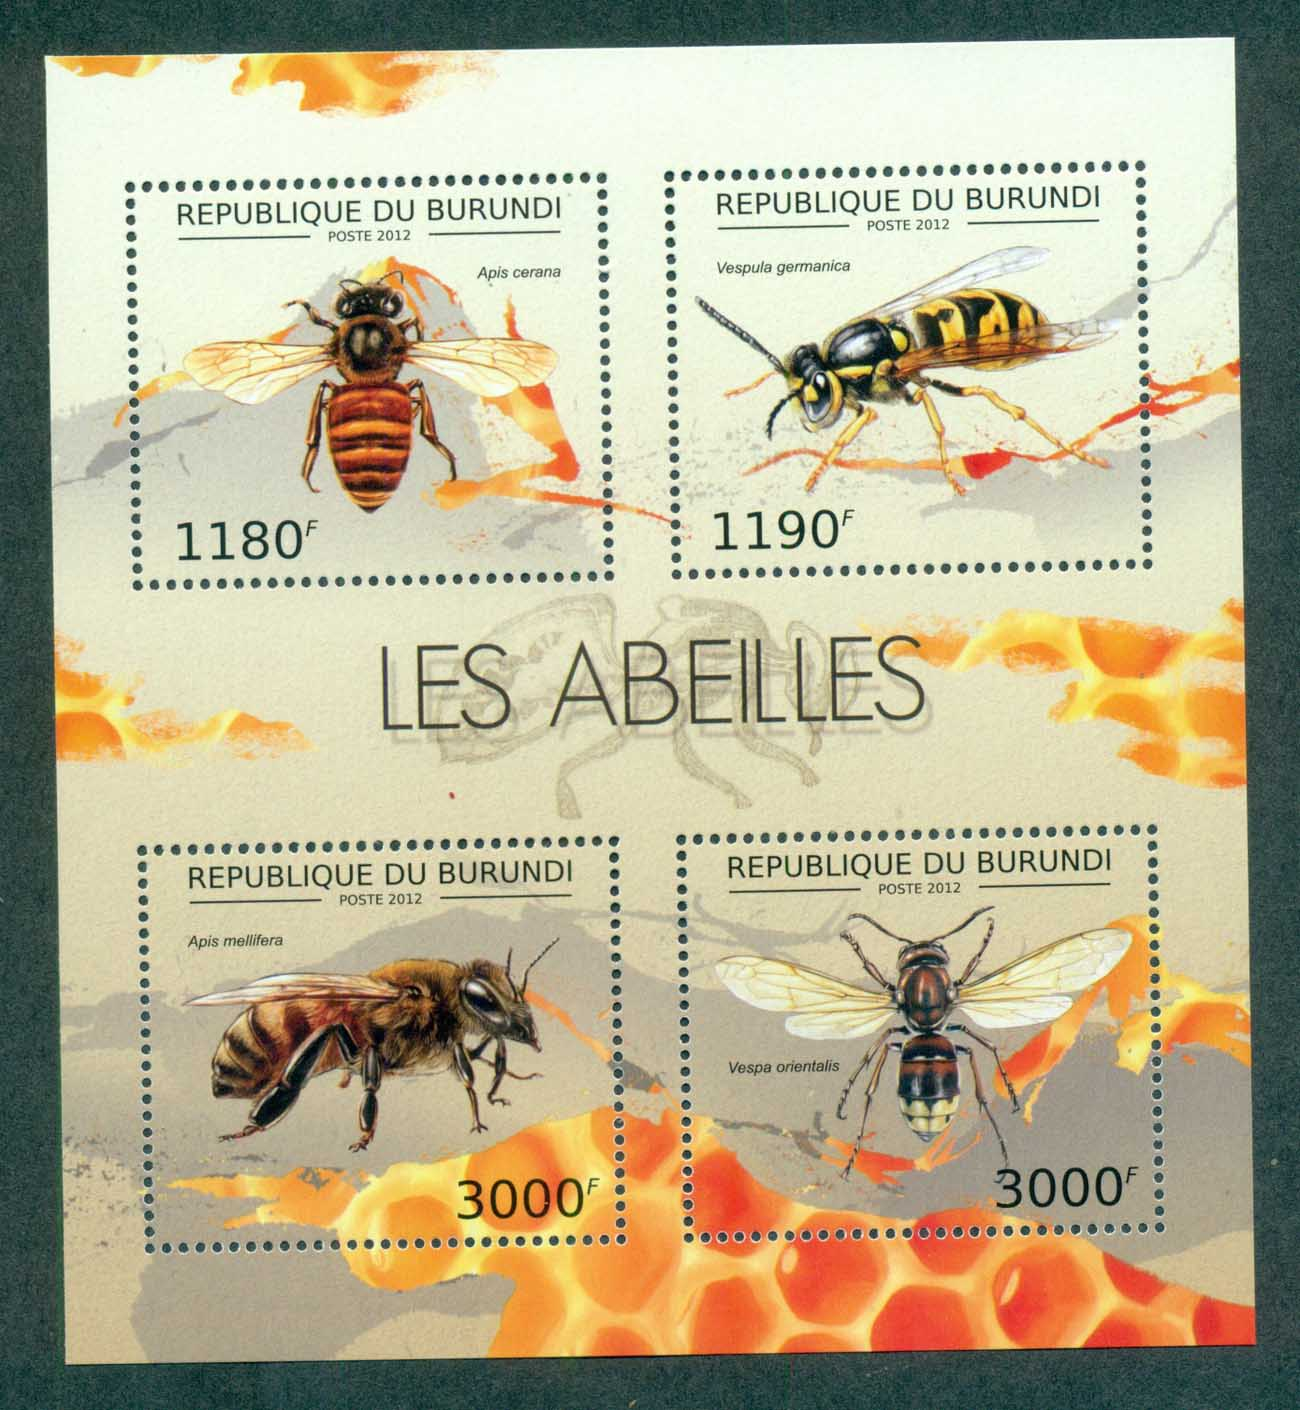 Burundi 2012 Insects, Bee, Wasp, Fly MS MUH BUR12620a